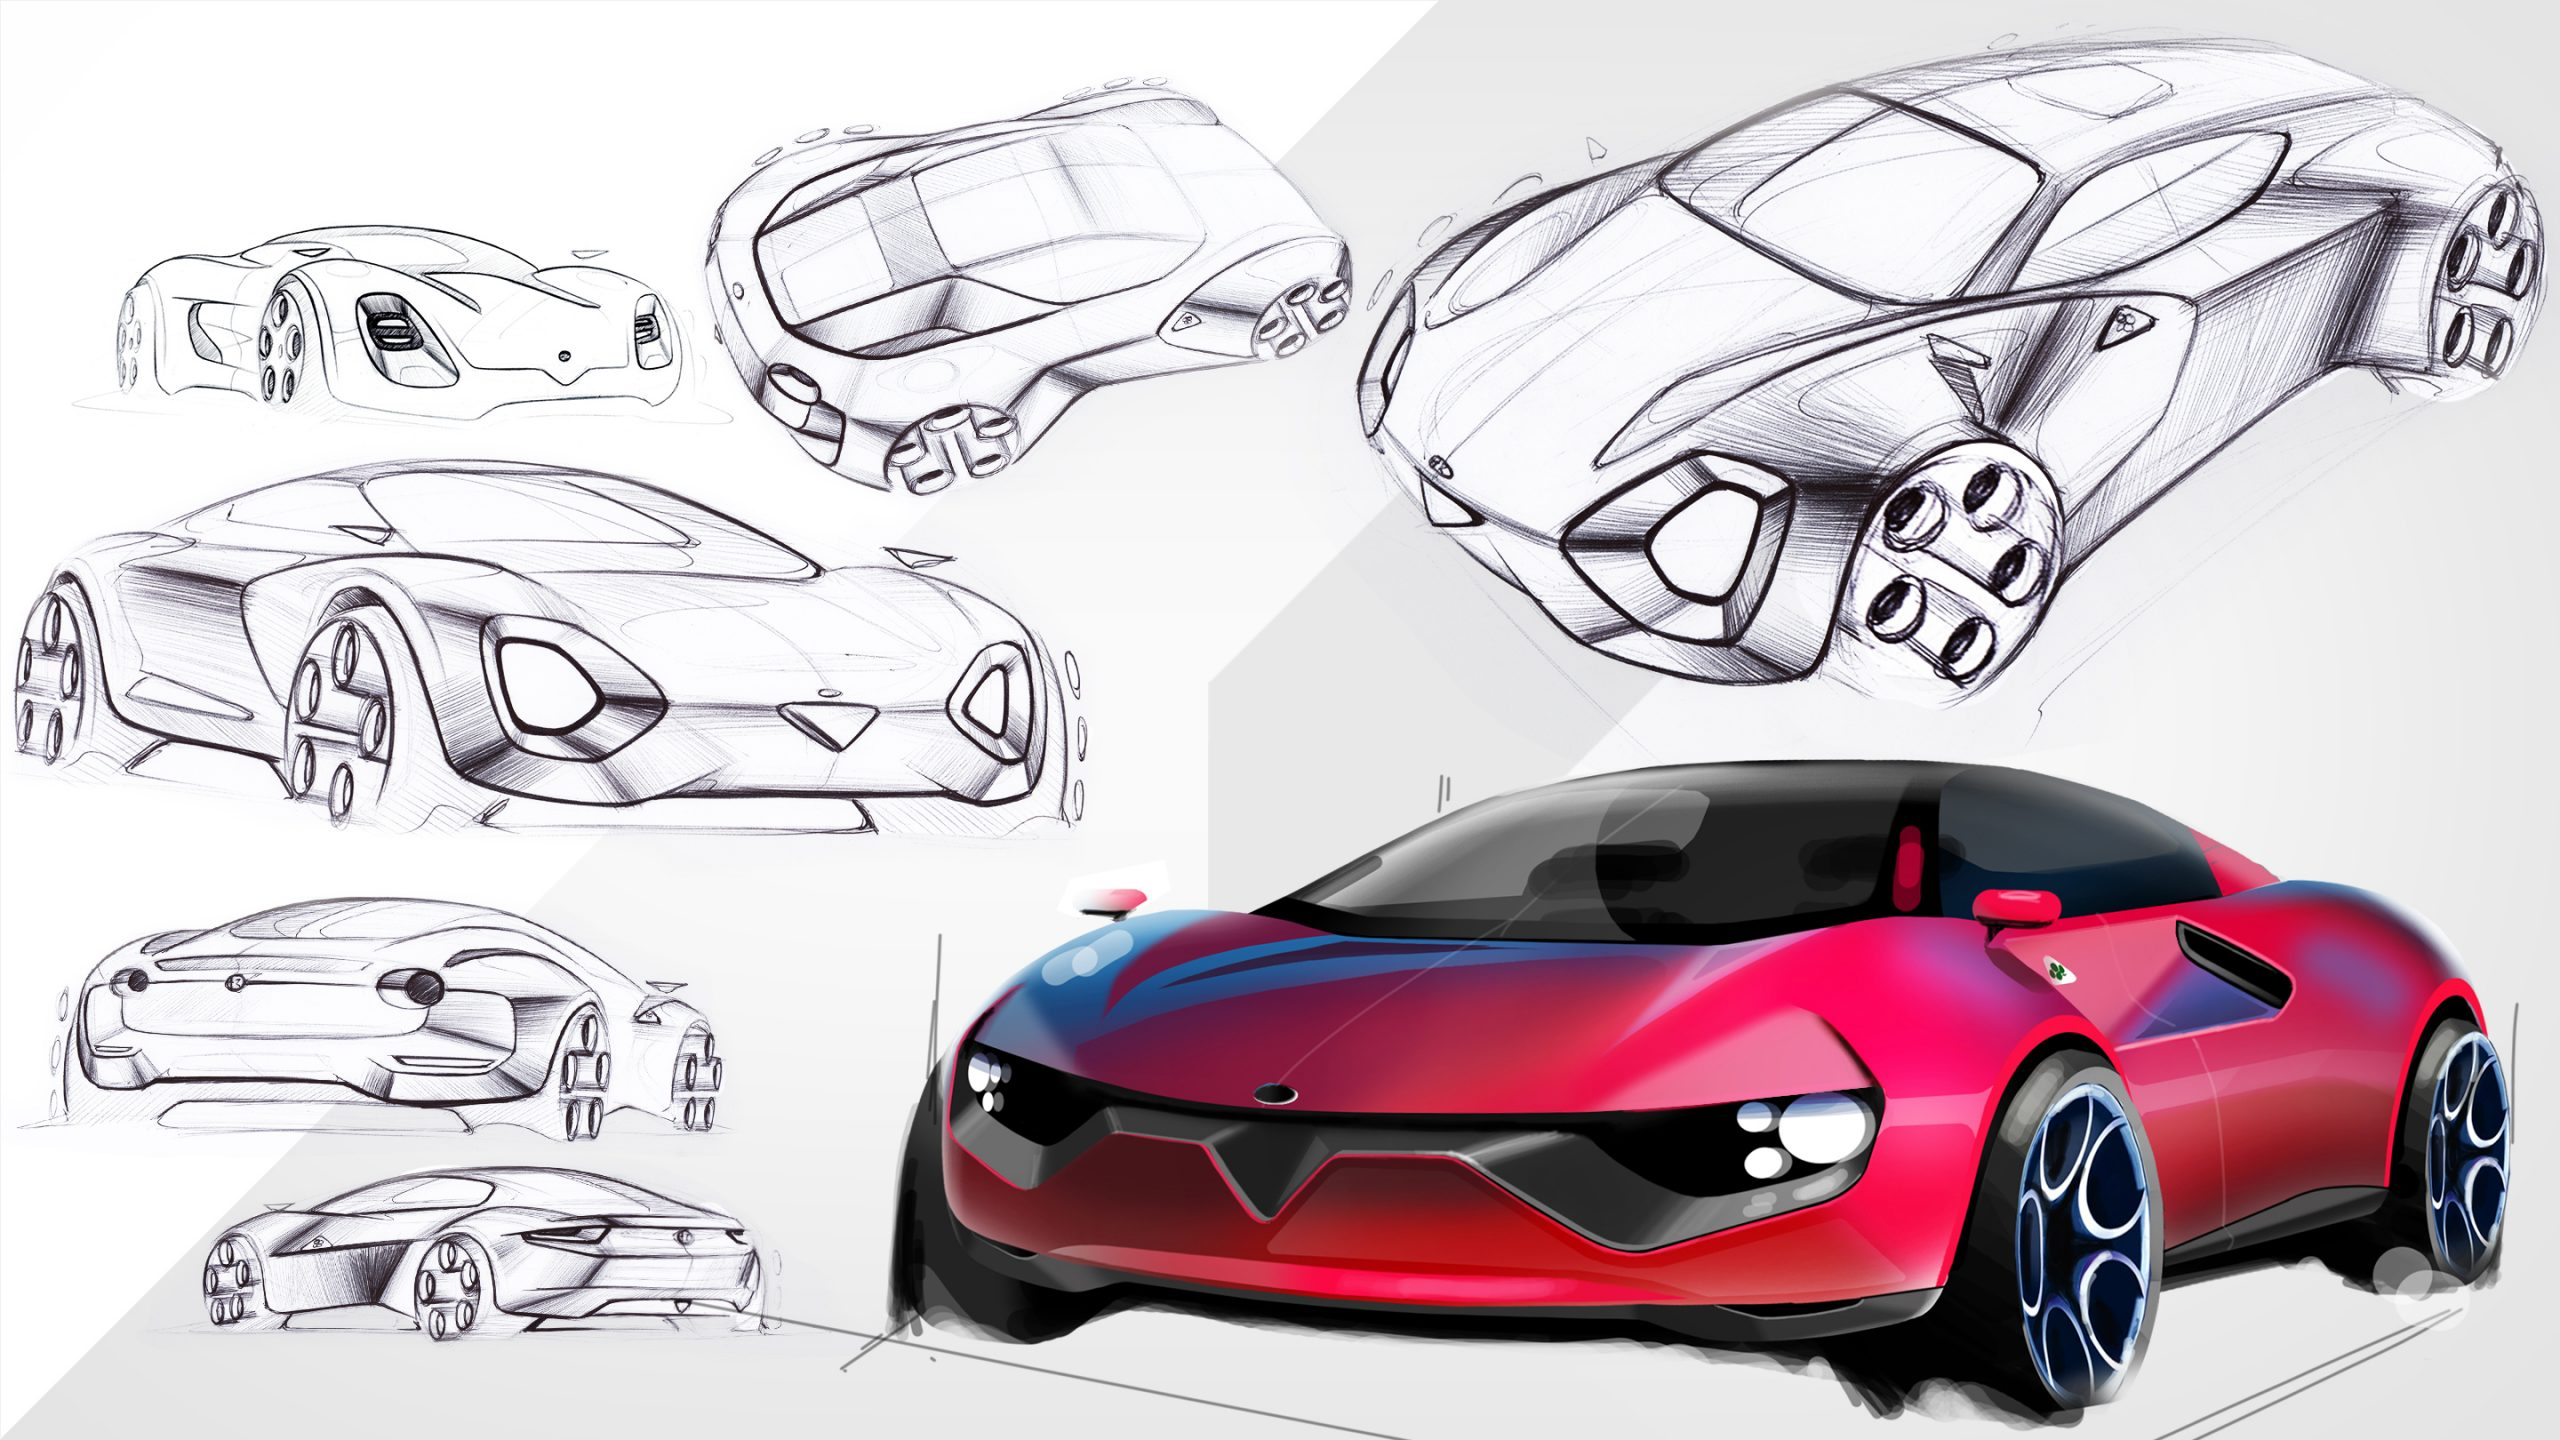 red sporty car design sketch progress in 7 steps from idea to rendering front